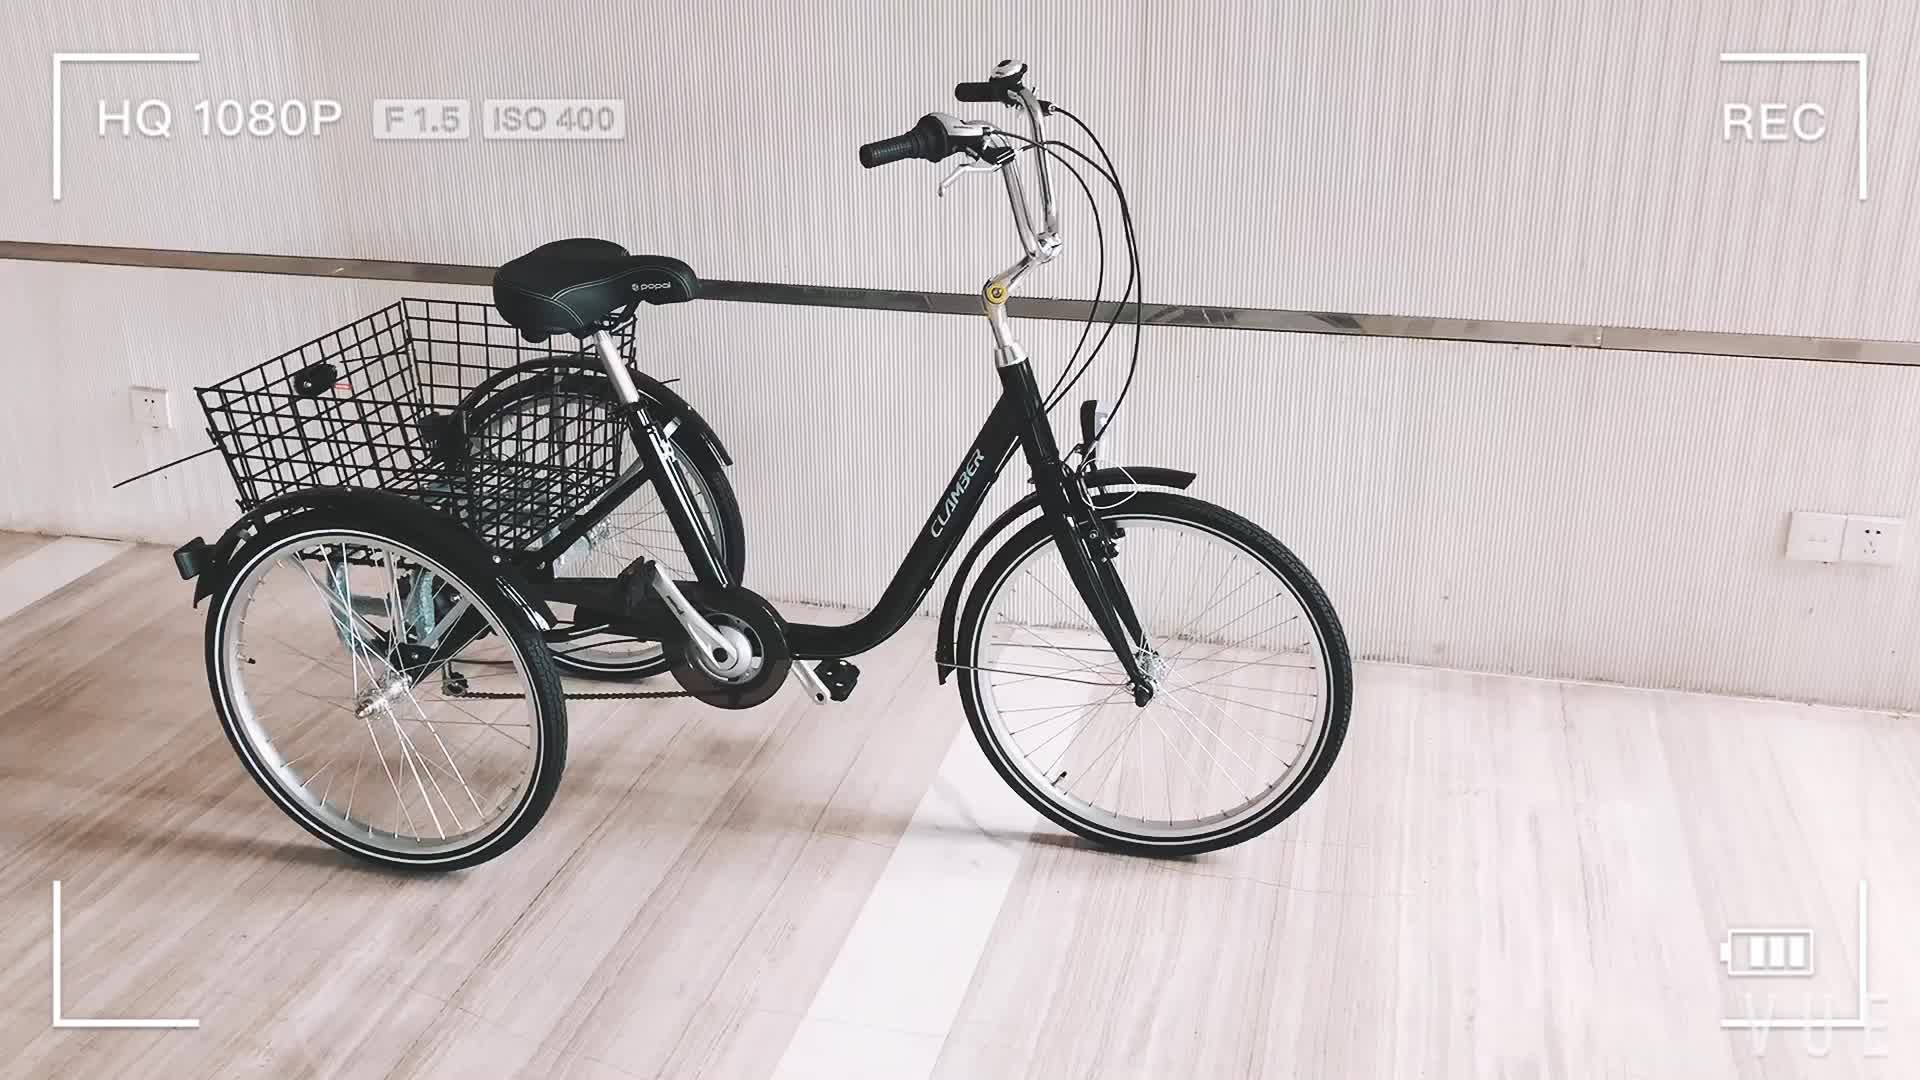 tricycle with fat tire cargo bike beach bike bicycle 20*4.0 tire GW-7022